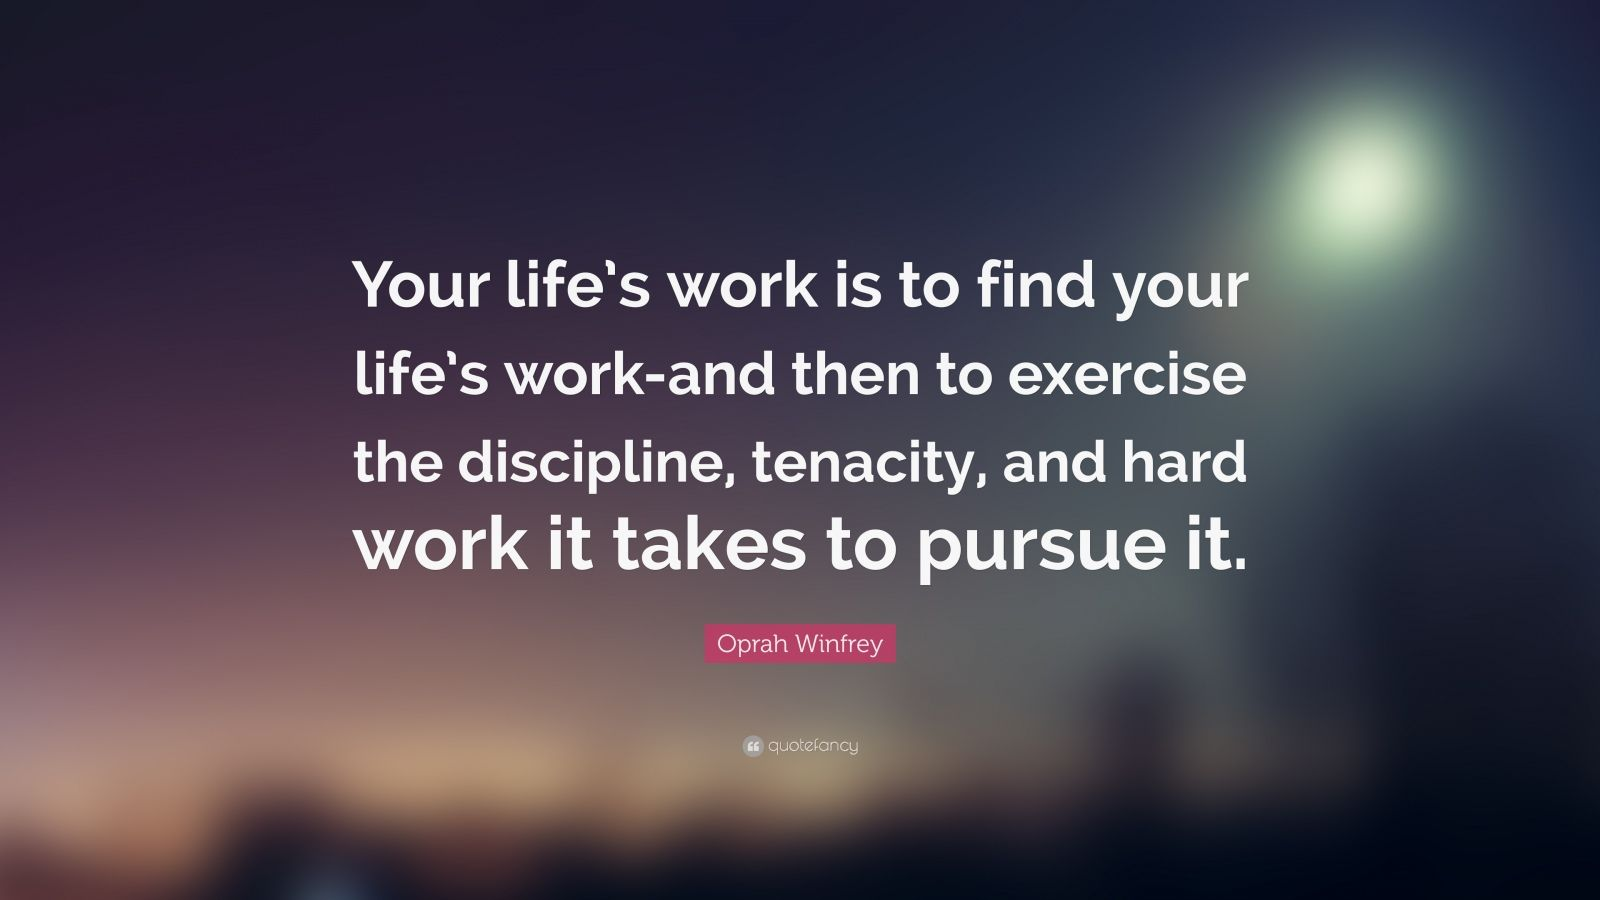 """Oprah Winfrey Quote: """"Your life's work is to find your life's work-and then to exercise the discipline, tenacity, and hard work it takes to pursue it."""""""